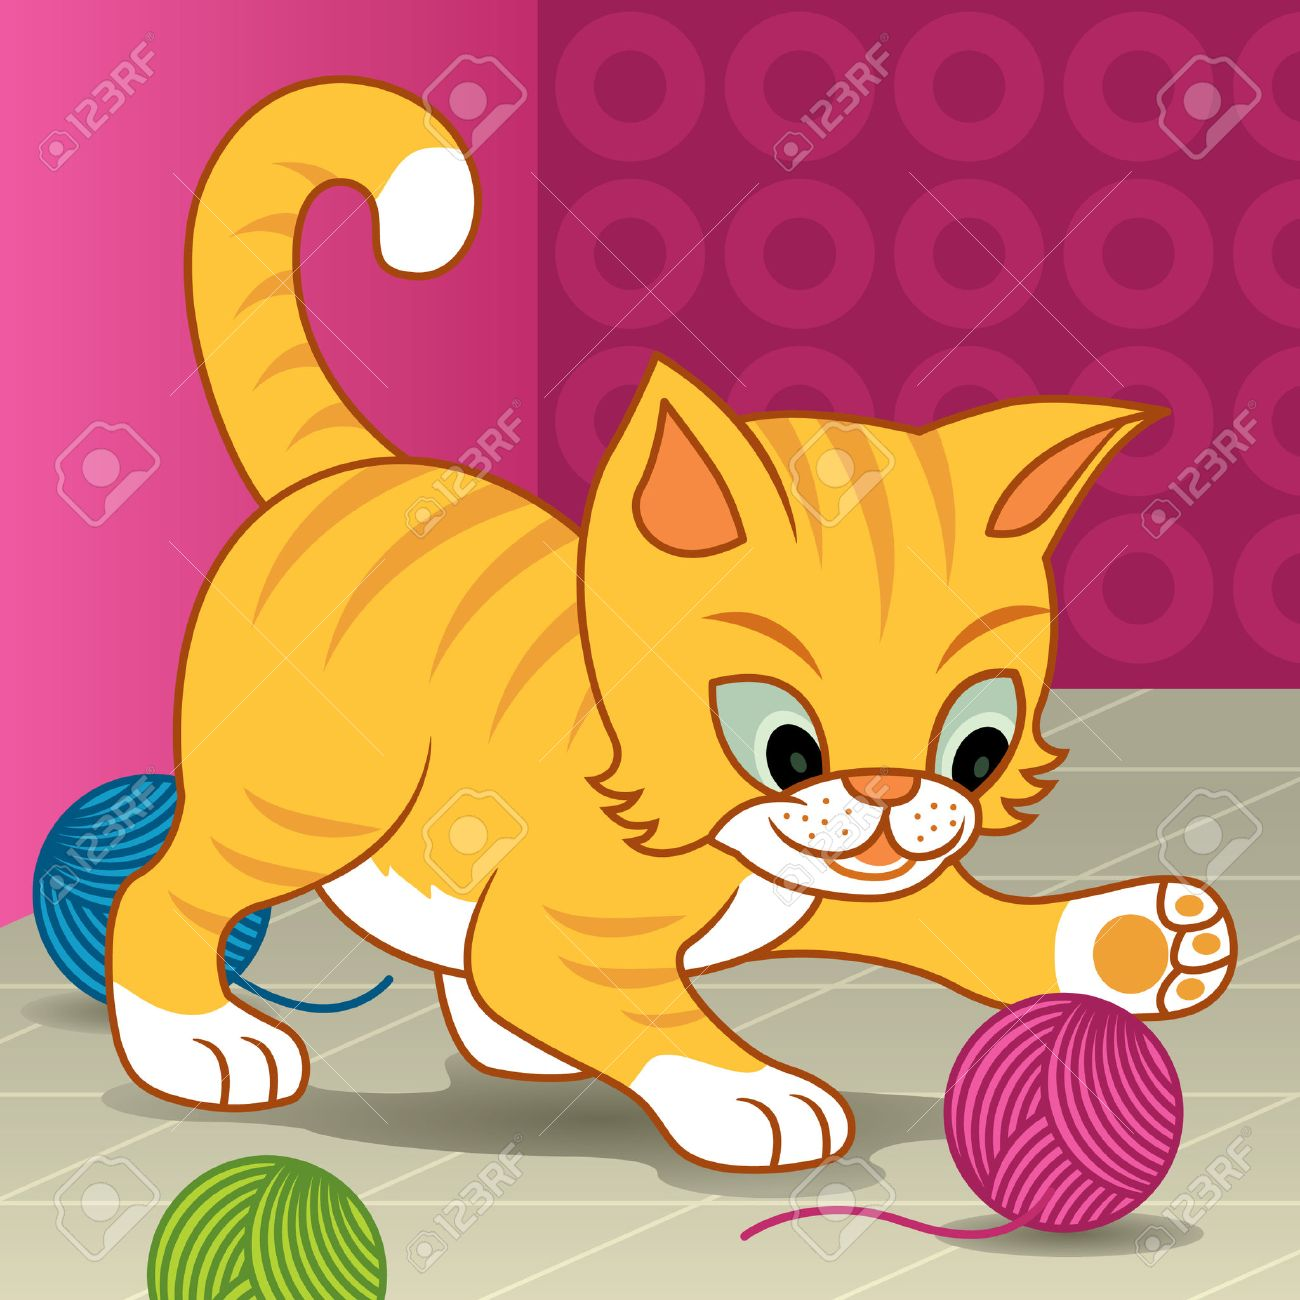 Vector cartoon illustration of a small kitten playing with a ball of yarn - More animals in my gallery. Stock Vector - 6721882